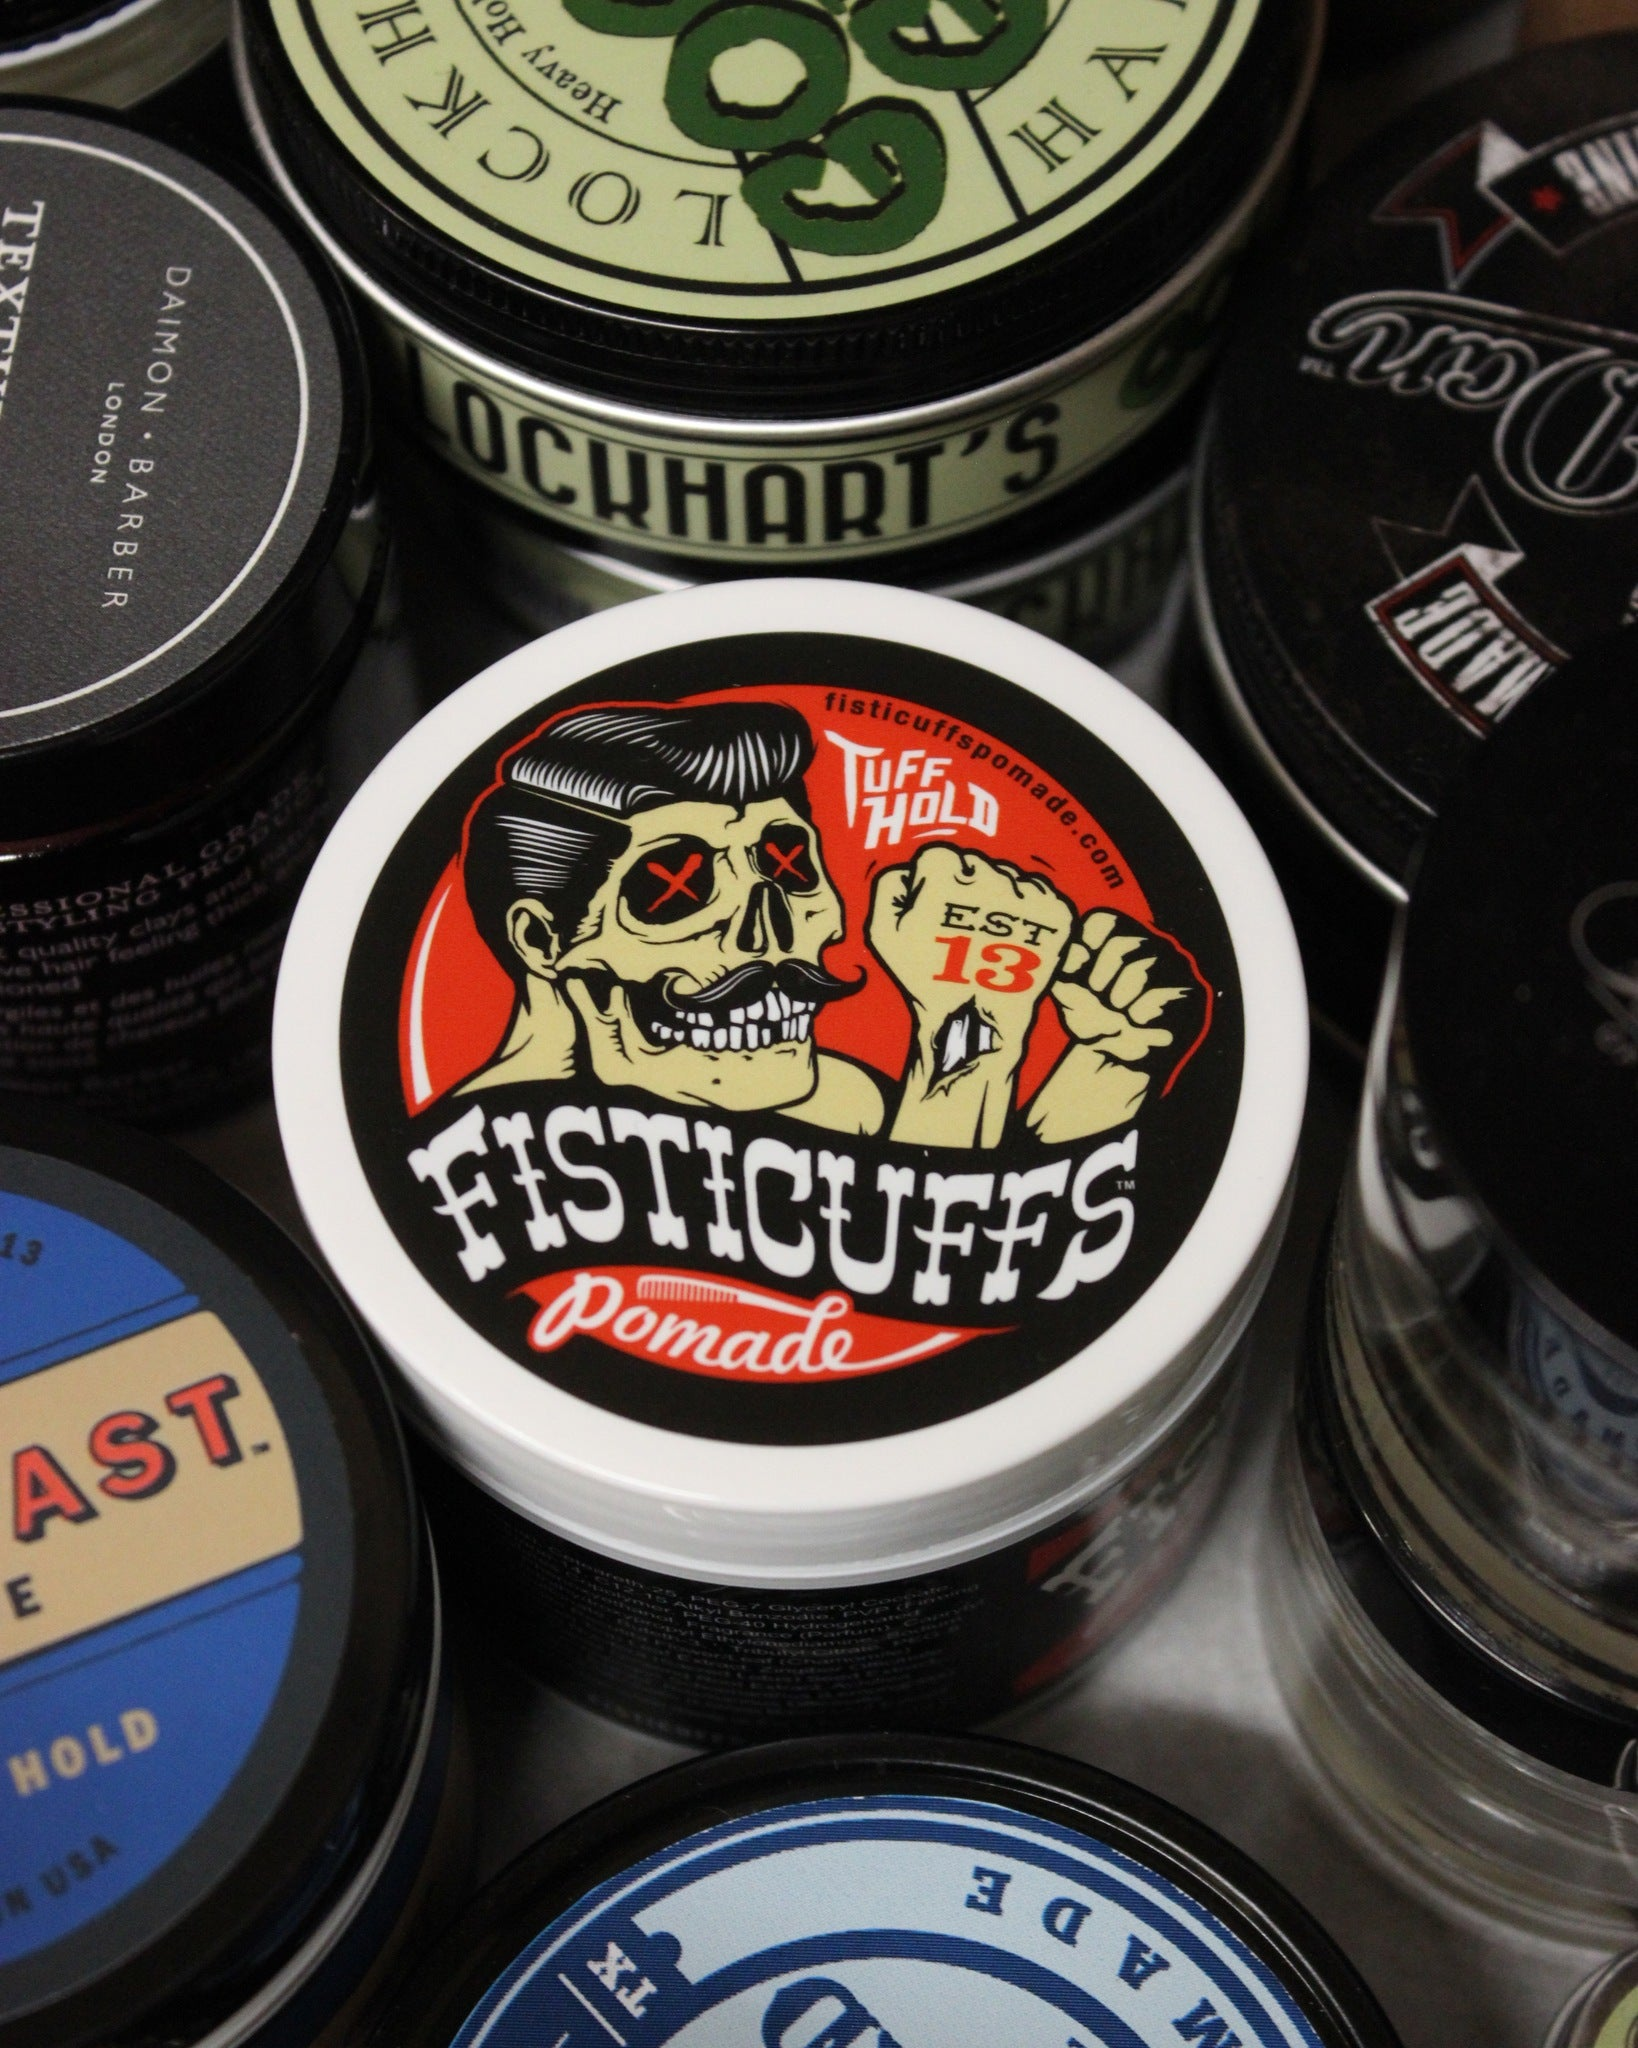 Fisticuffs Pomade